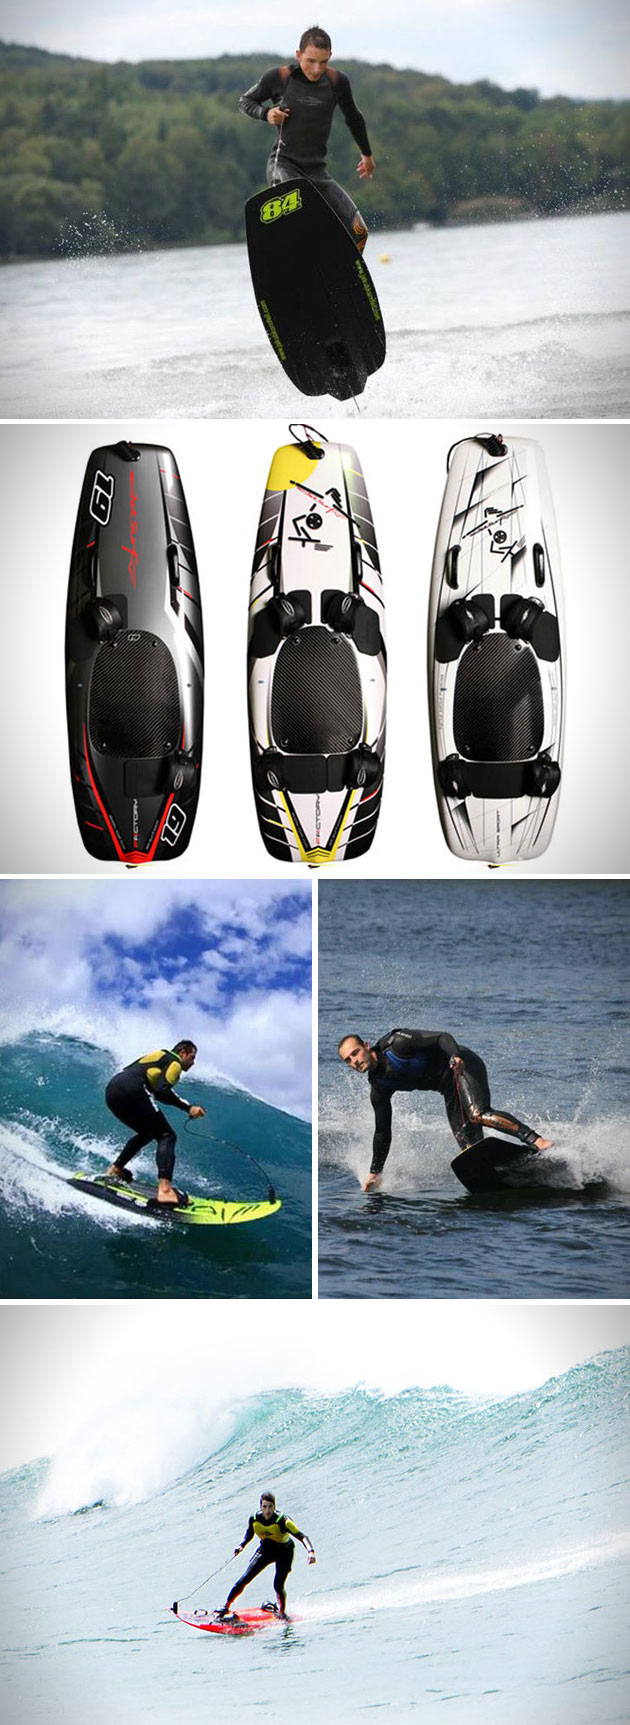 JetSurf Jet-Propelled Surfboard